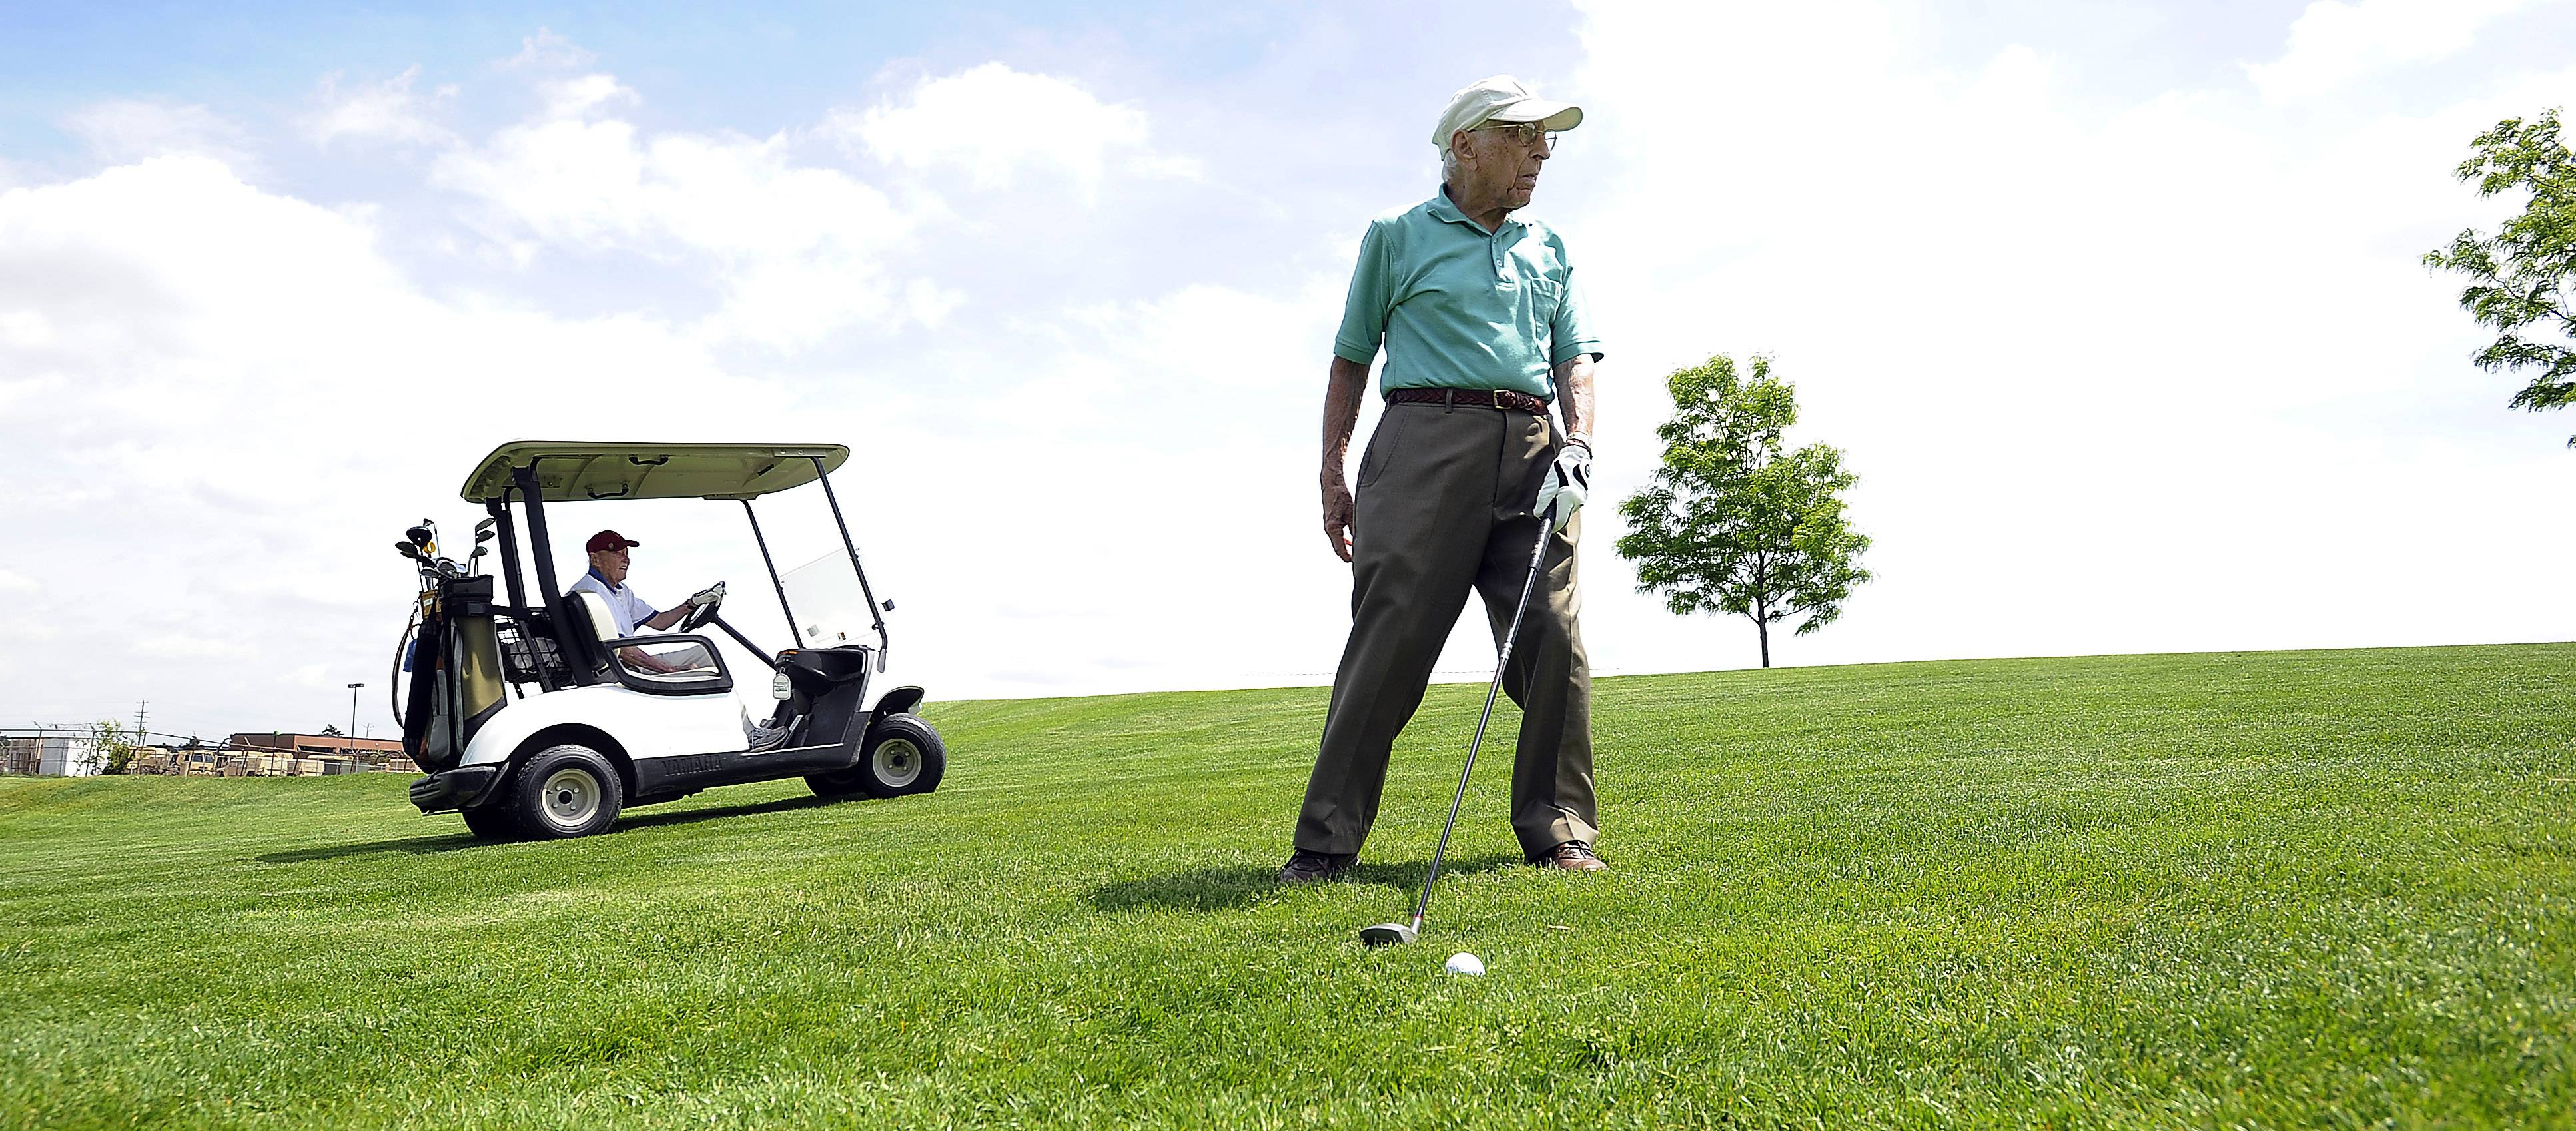 At 103 years old, golfer Dick Muhlethaler eyes the green as he ponders his next shot. Playing partner Dick Breeden, 98, waits in the golf cart.